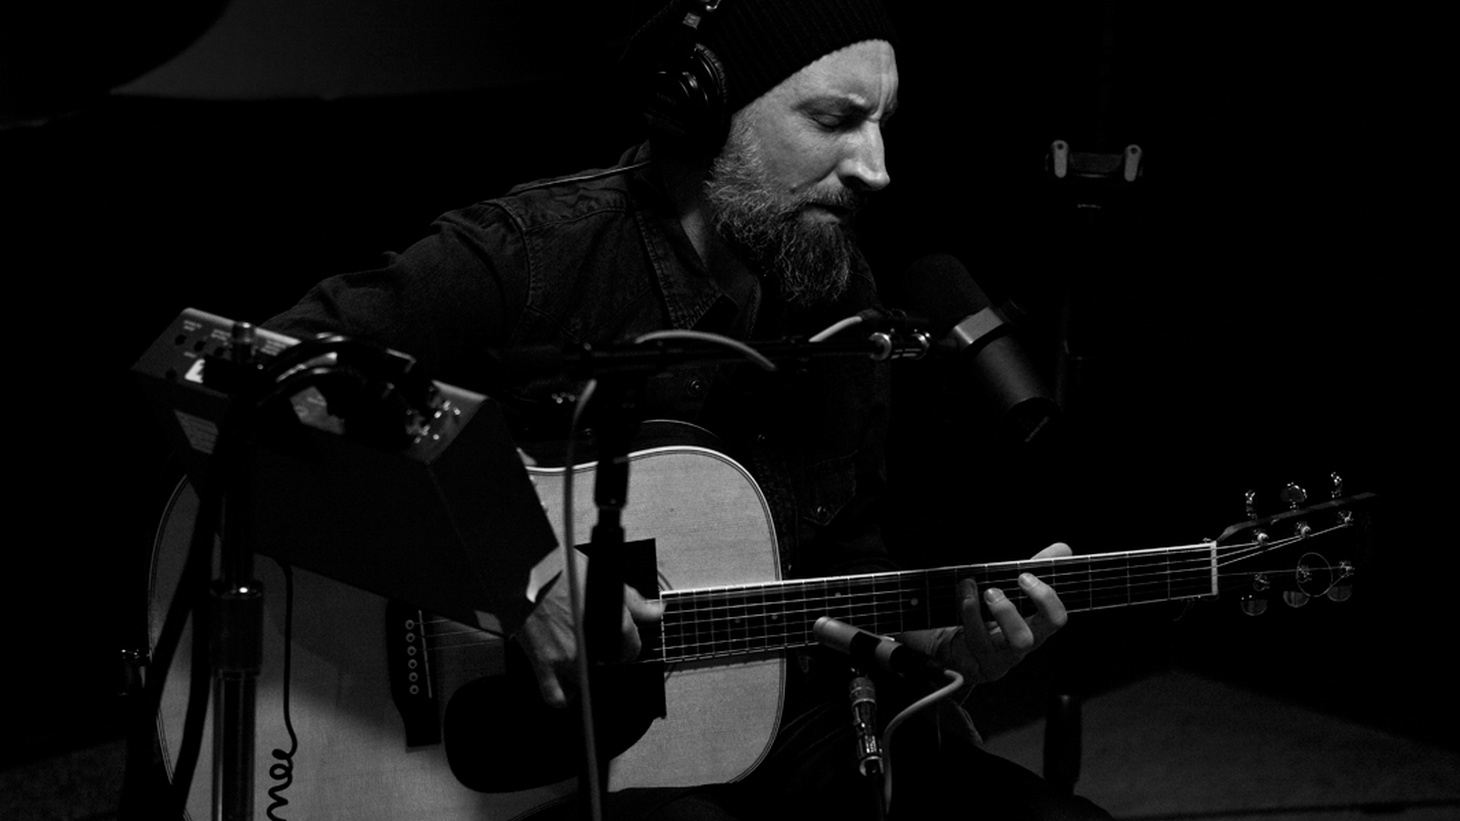 In this special edition of the Morning Becomes Eclectic podcast we feature the full live session from U.K. artist Fink.